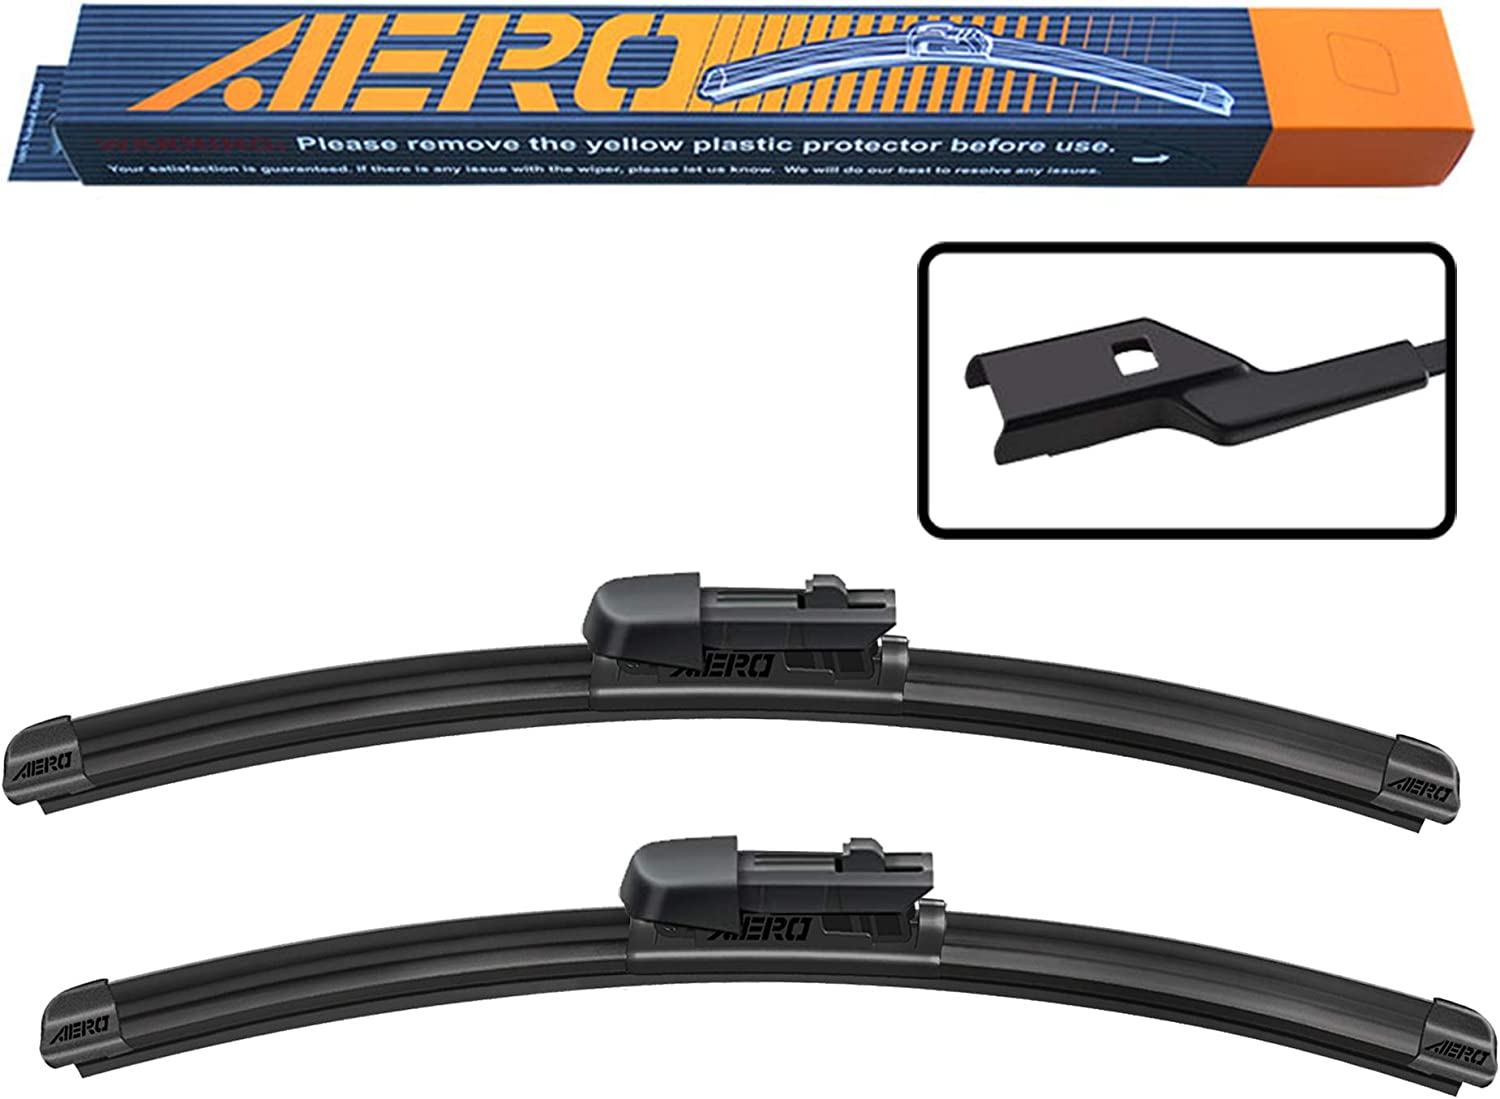 Windshield Wiper Blades All Season Natural Rubber Cleaning Window MIKKUPPA Front Original Equipment Replacement Wiper Pack of 2 Replacement for 2008-2014 Cadillac CTS 22+19